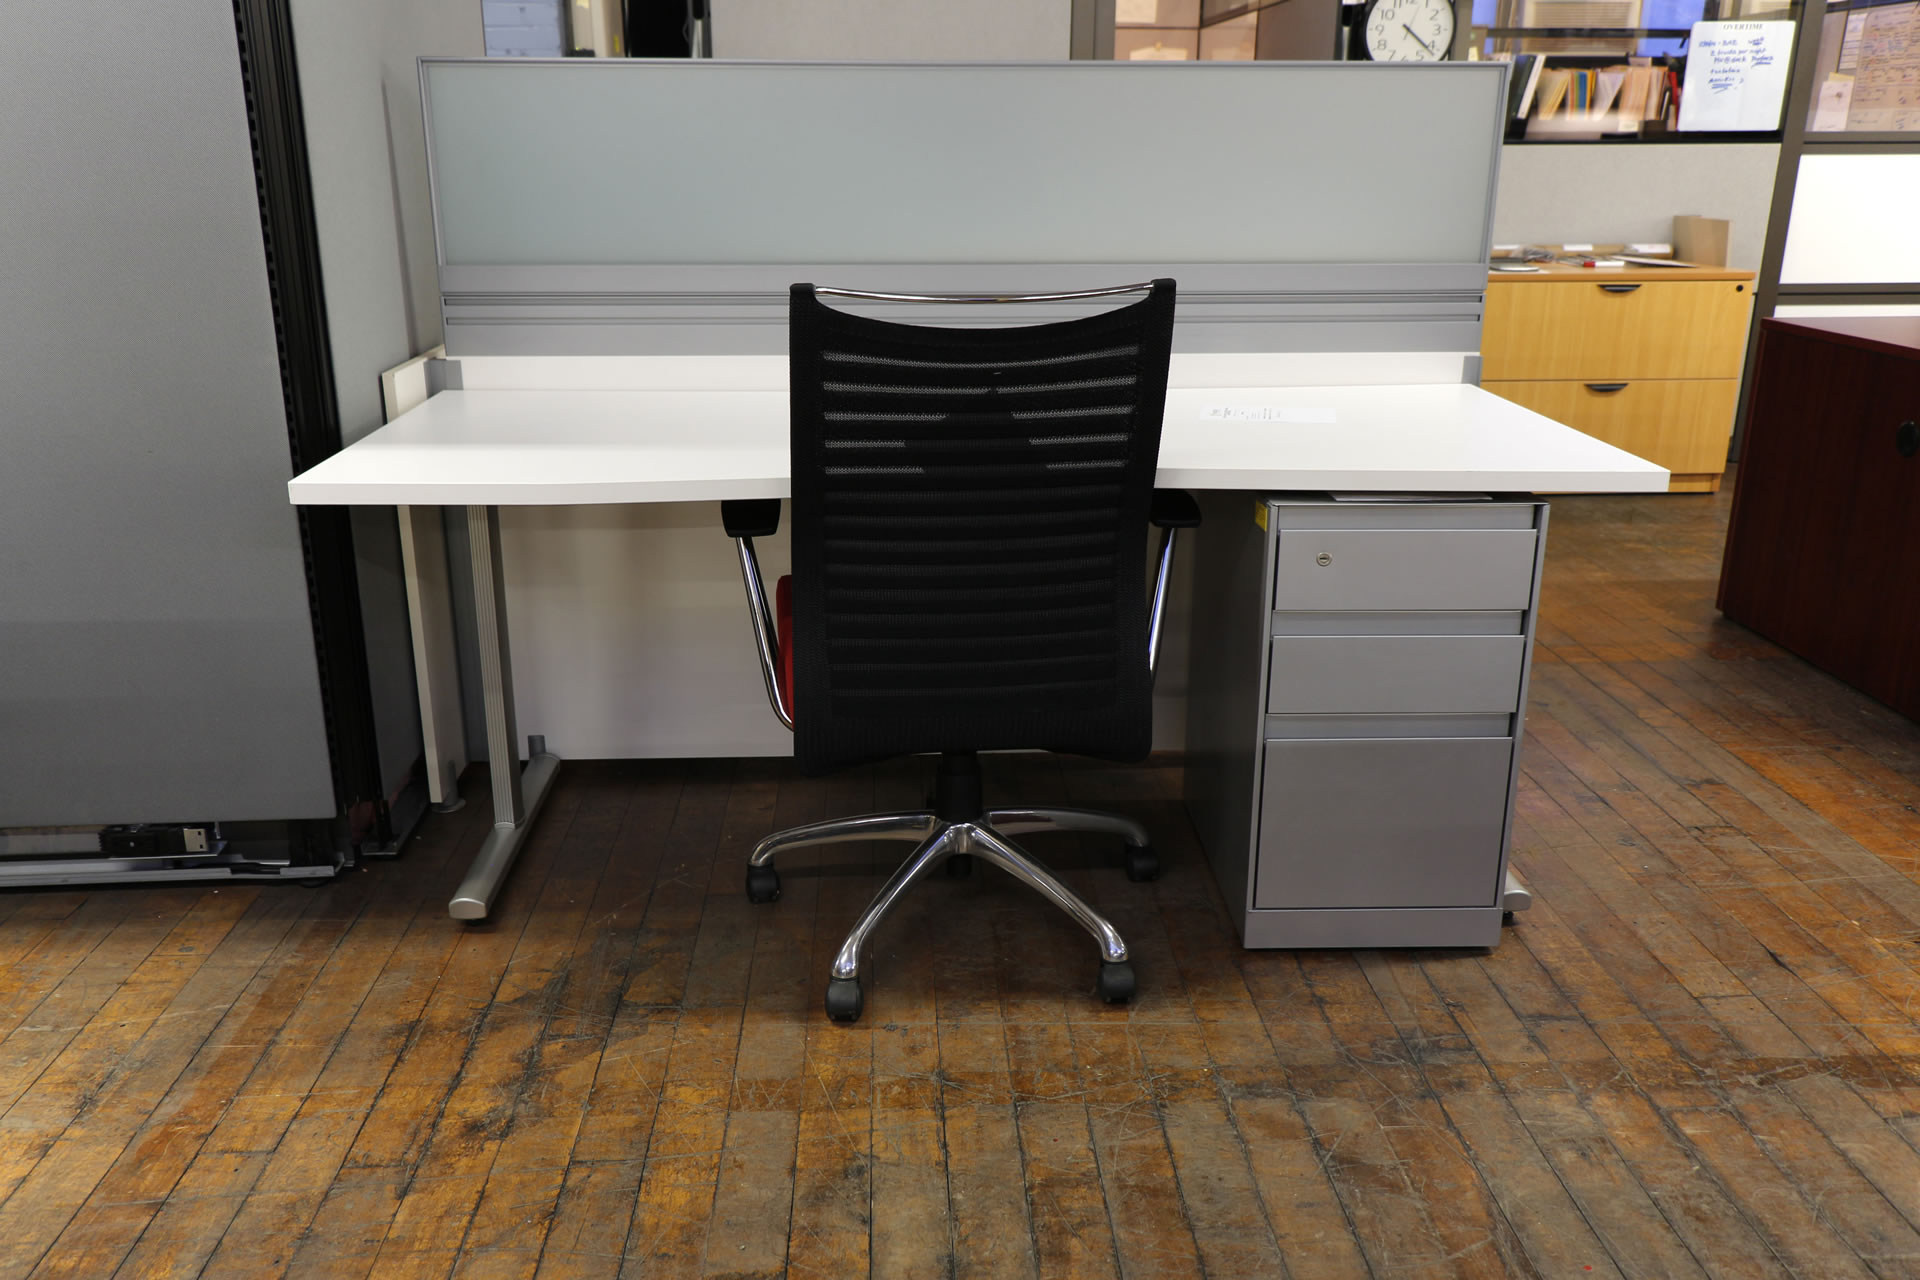 peartreeofficefurniture_peartreeofficefurniture_mg_4945.jpg